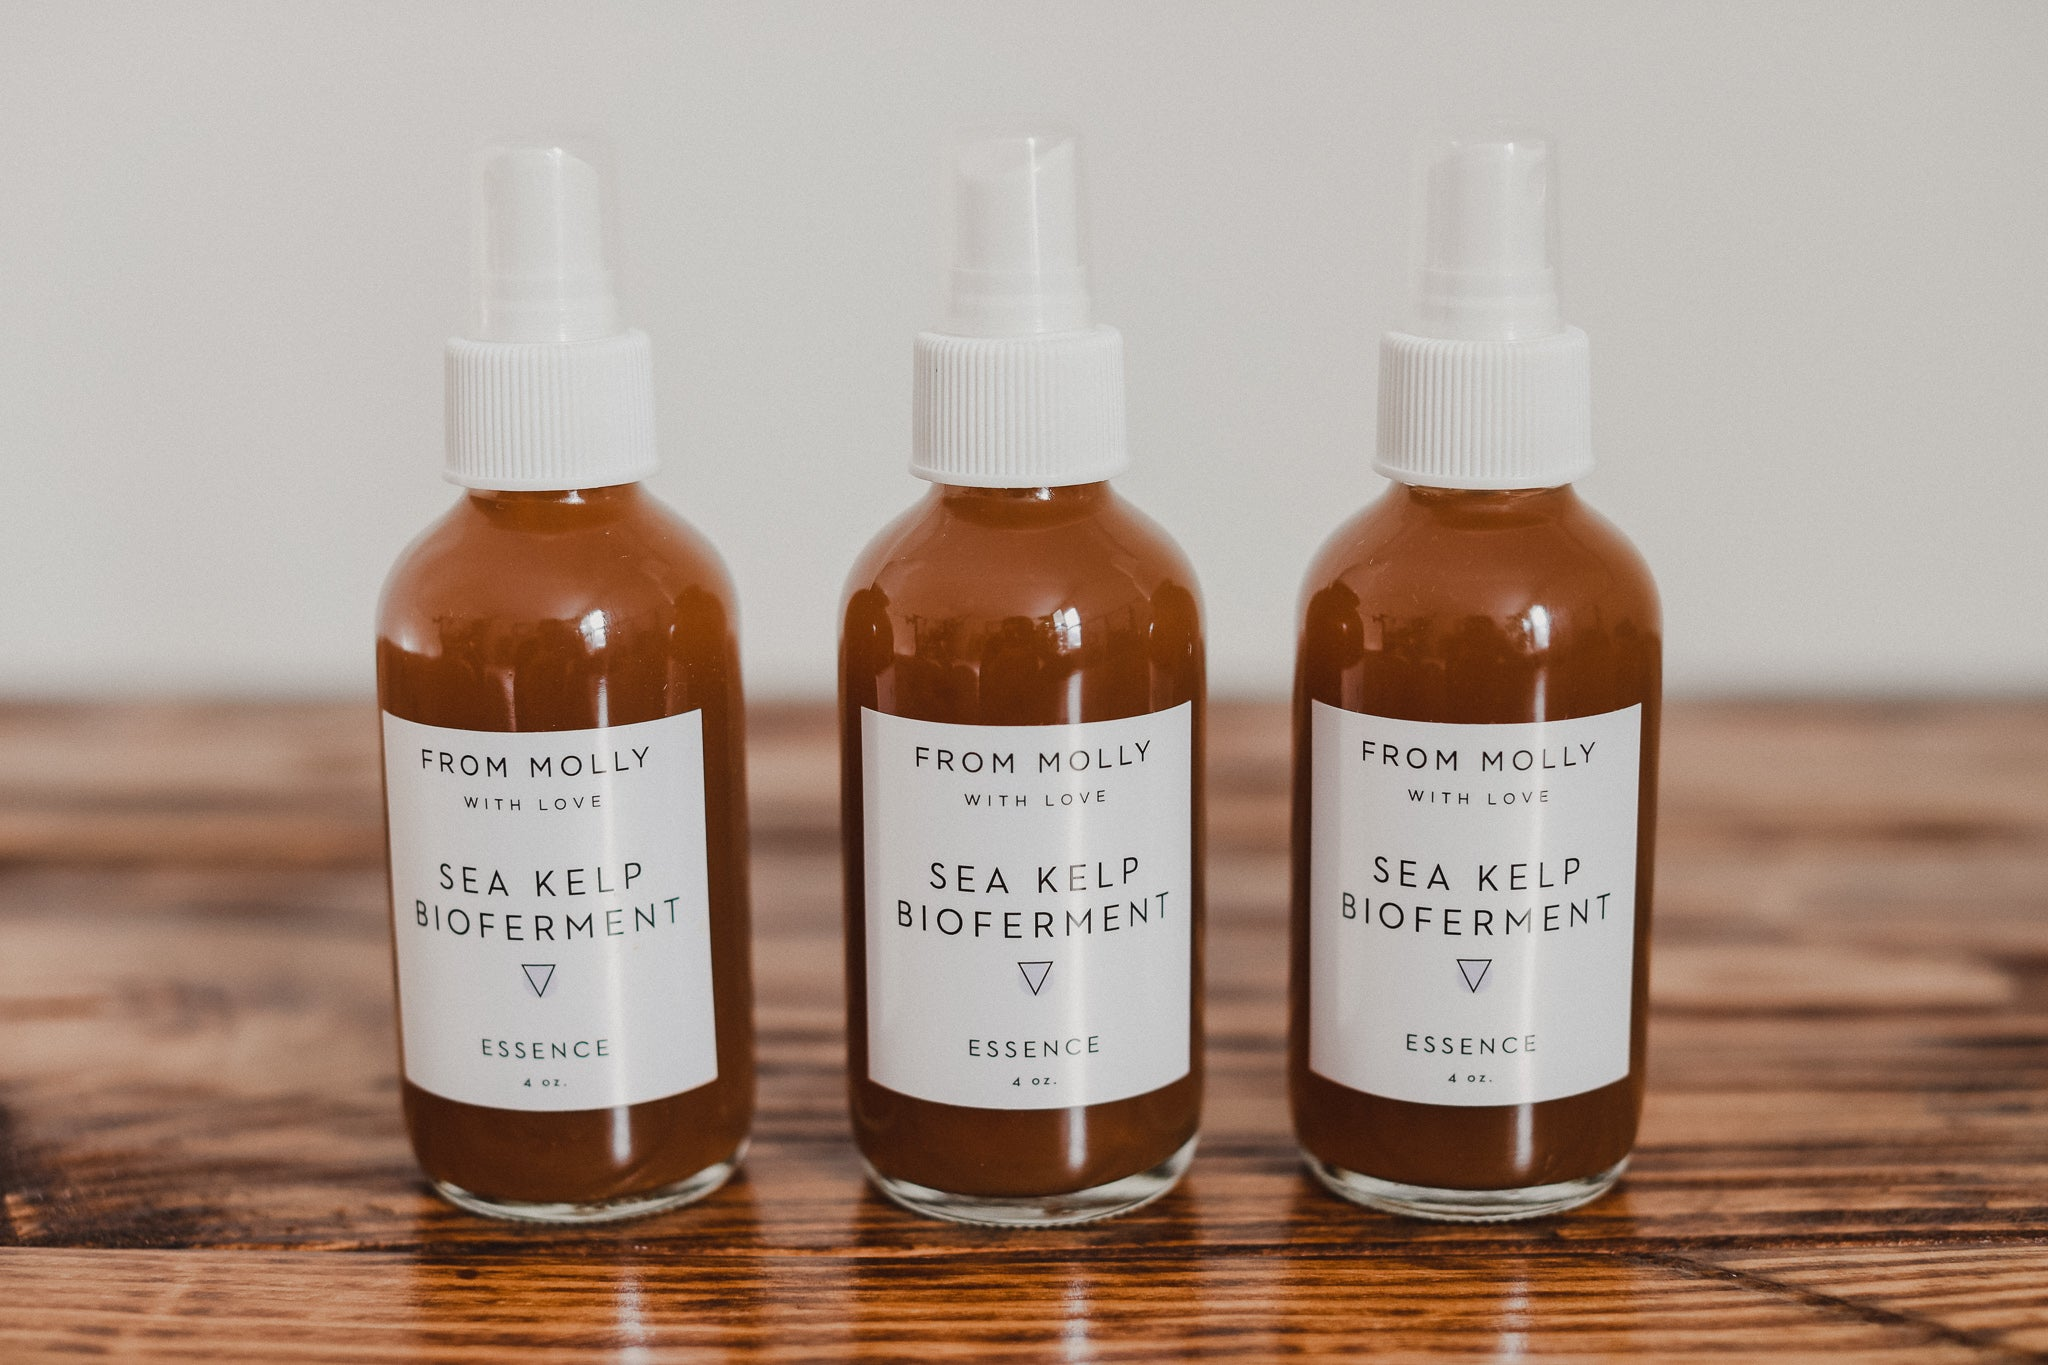 Sea Kelp Bioferment Essence